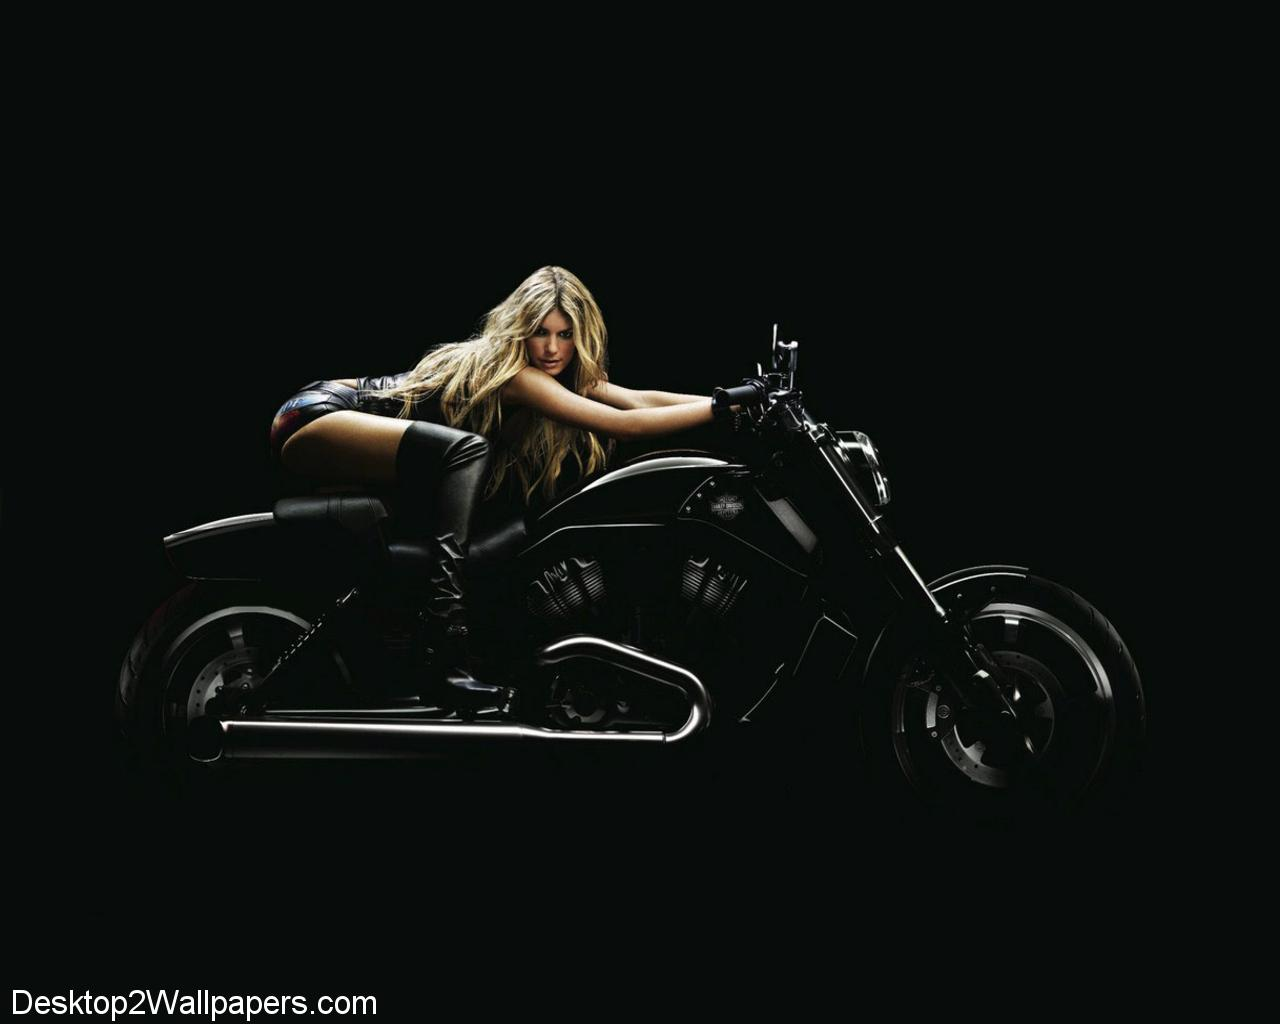 Free Harley Davidson Wallpapers  HD Wallpapers  Opengavel Wallpapers Of Harley Davidson Group  1280x1024